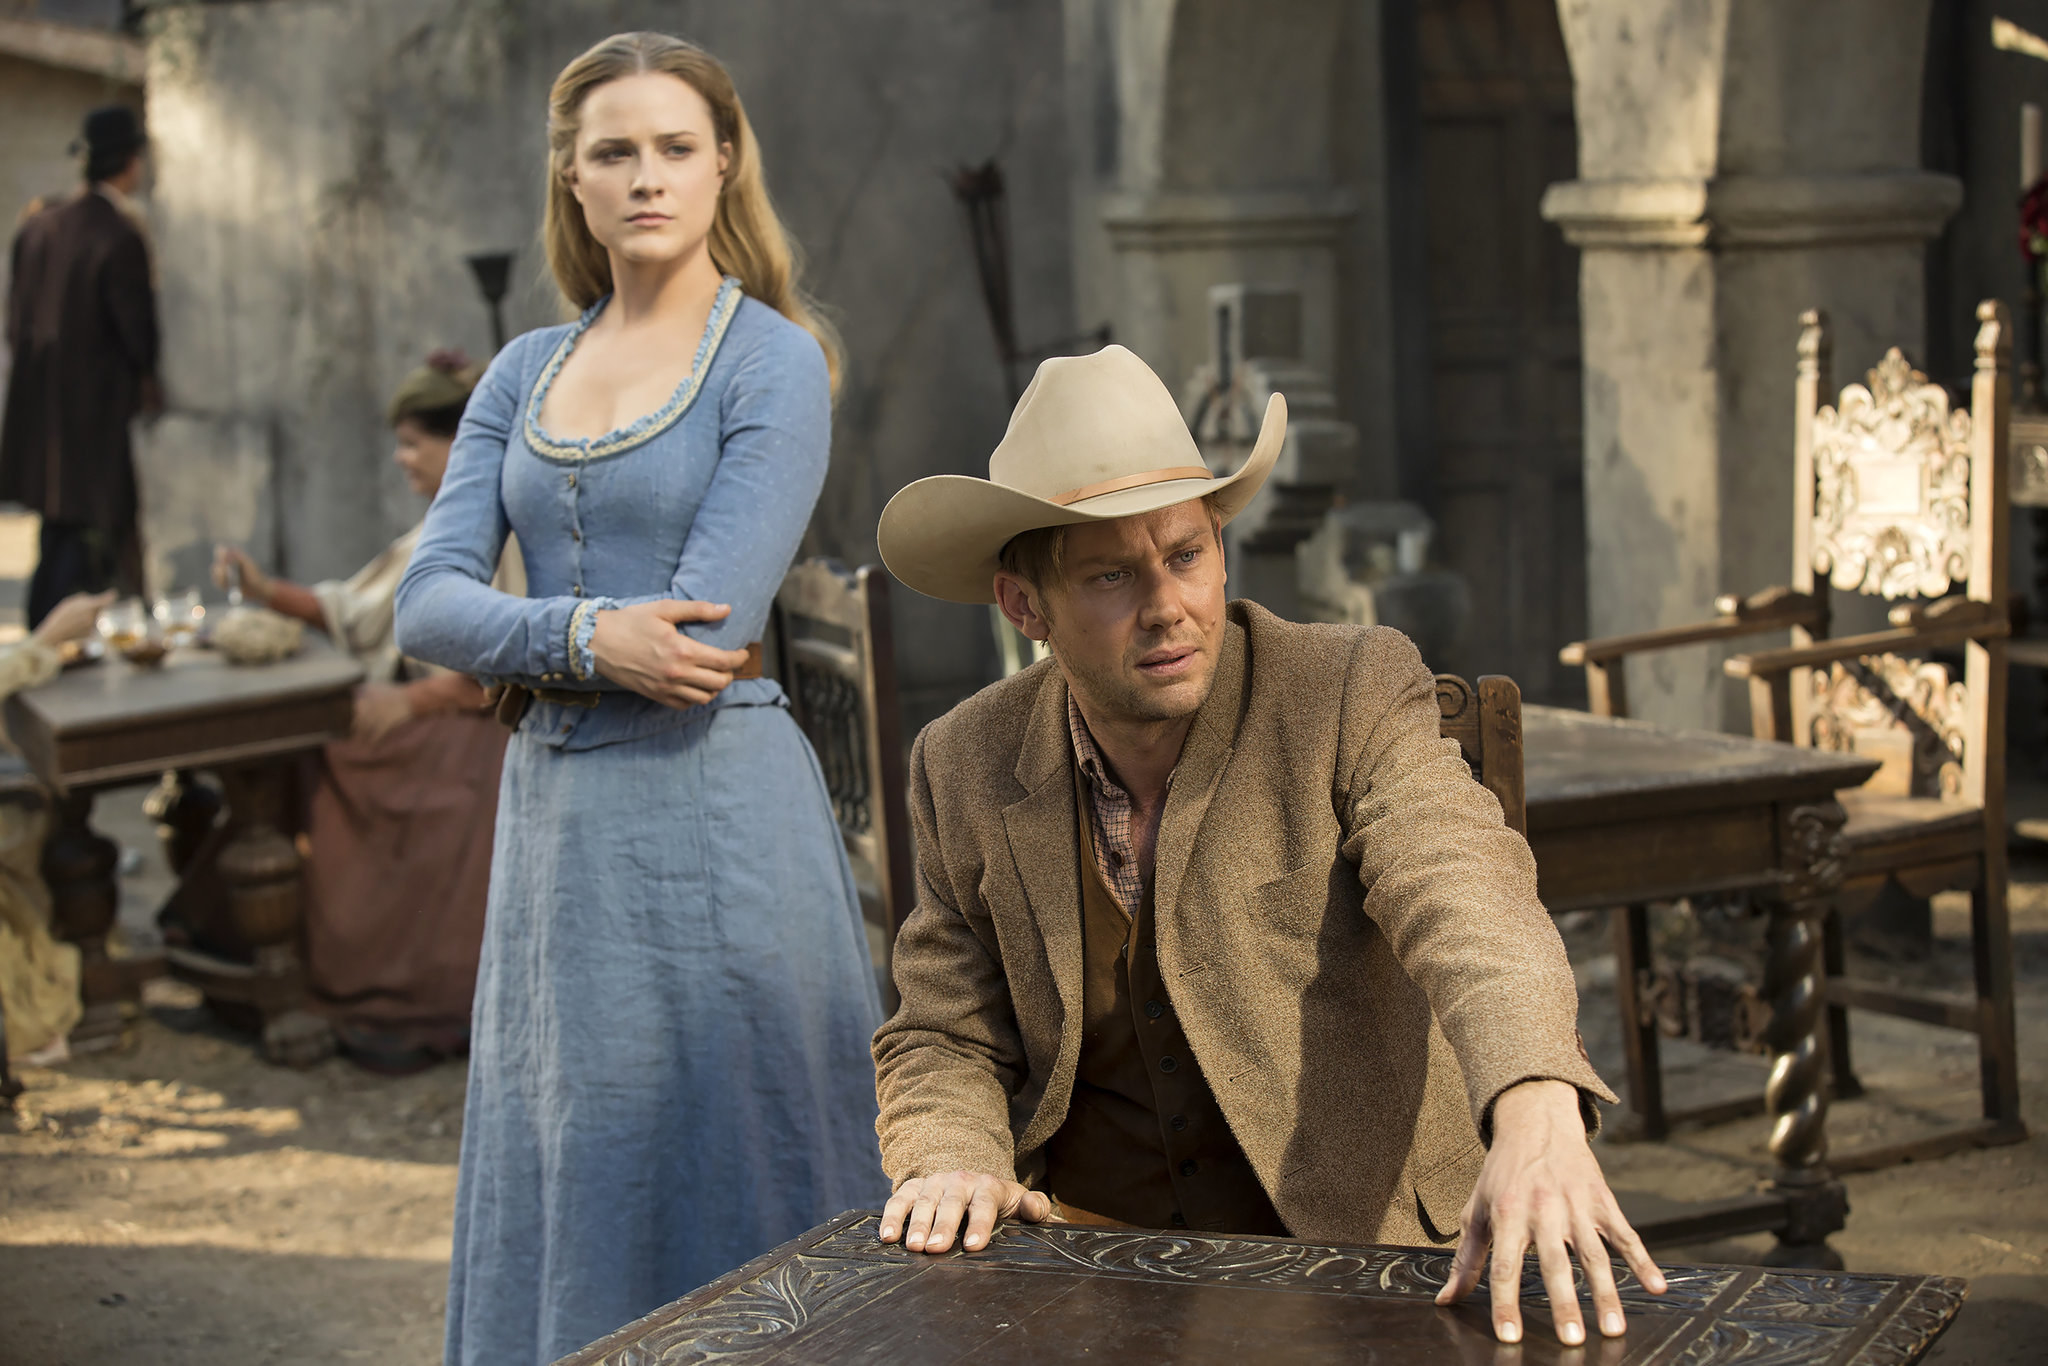 A man in a cowboy hat sitting at a table with a woman in old timey clothing standing behind him.